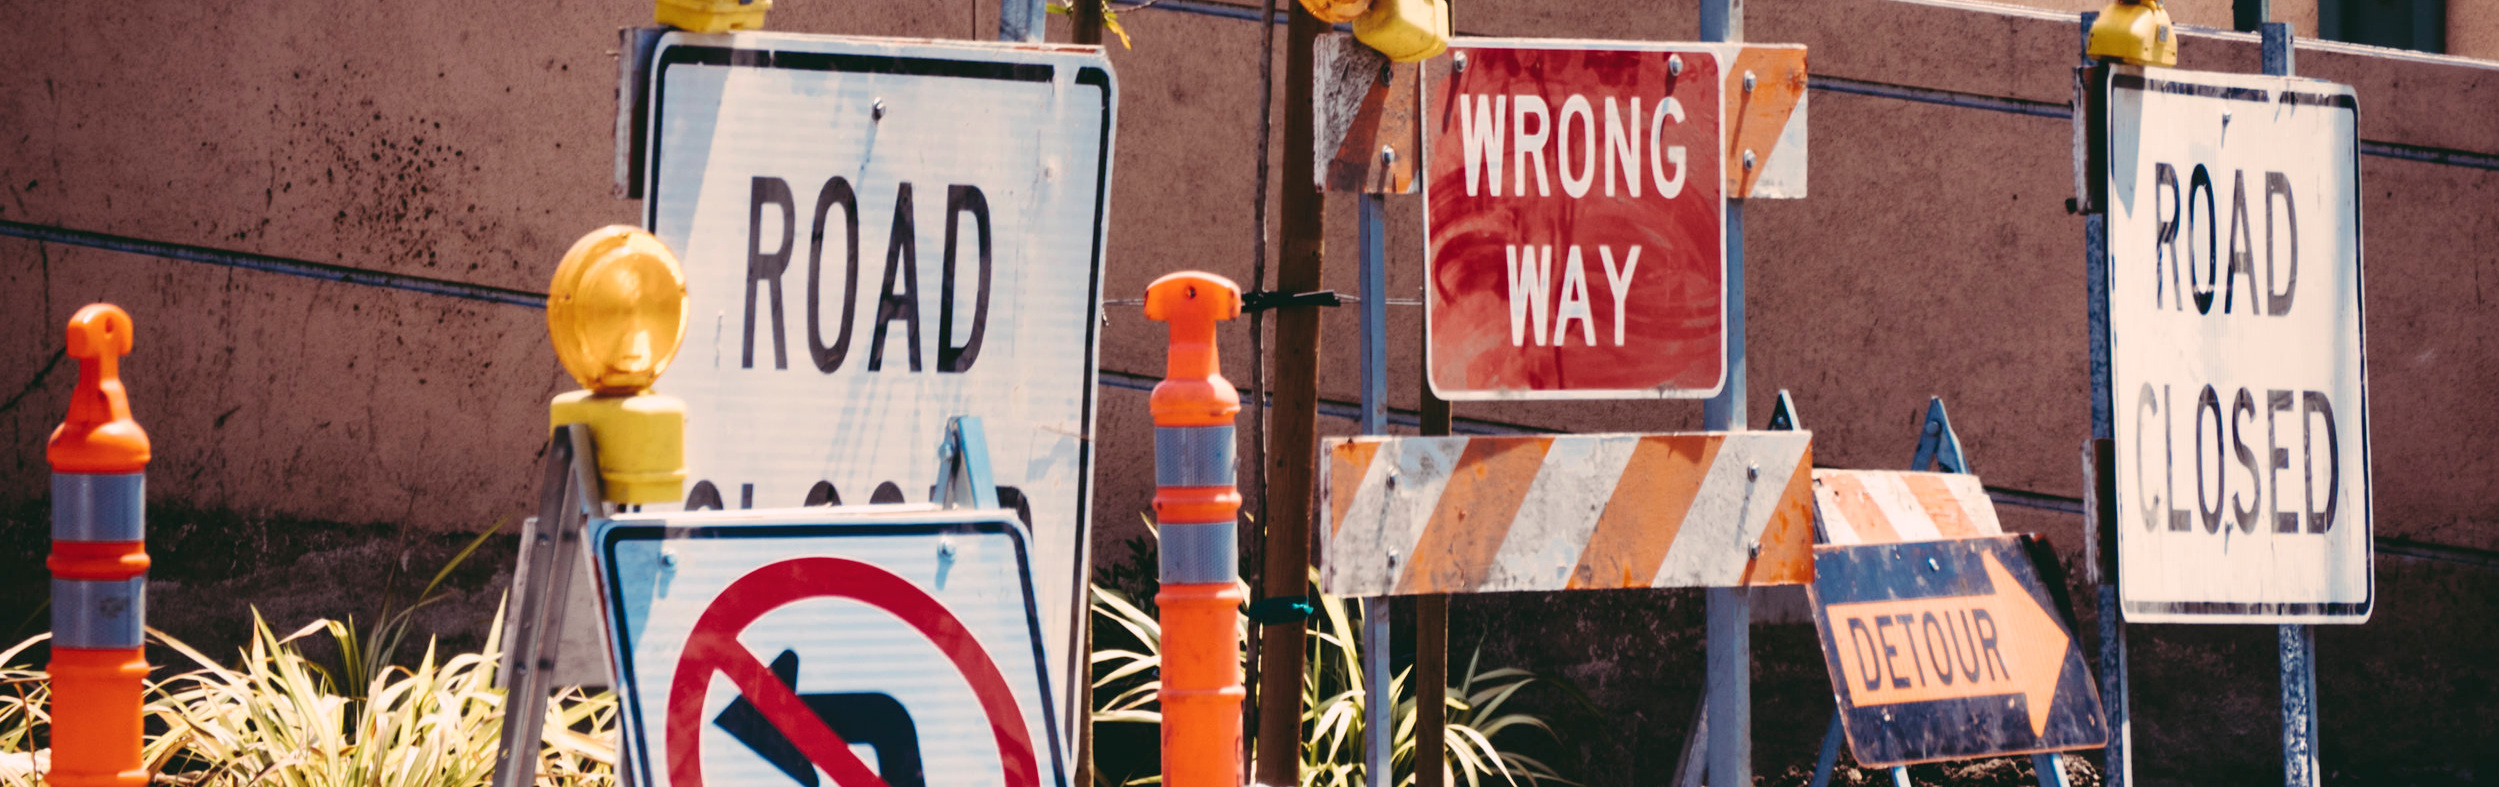 wrong way road sign - logo mistake and how to avoid them